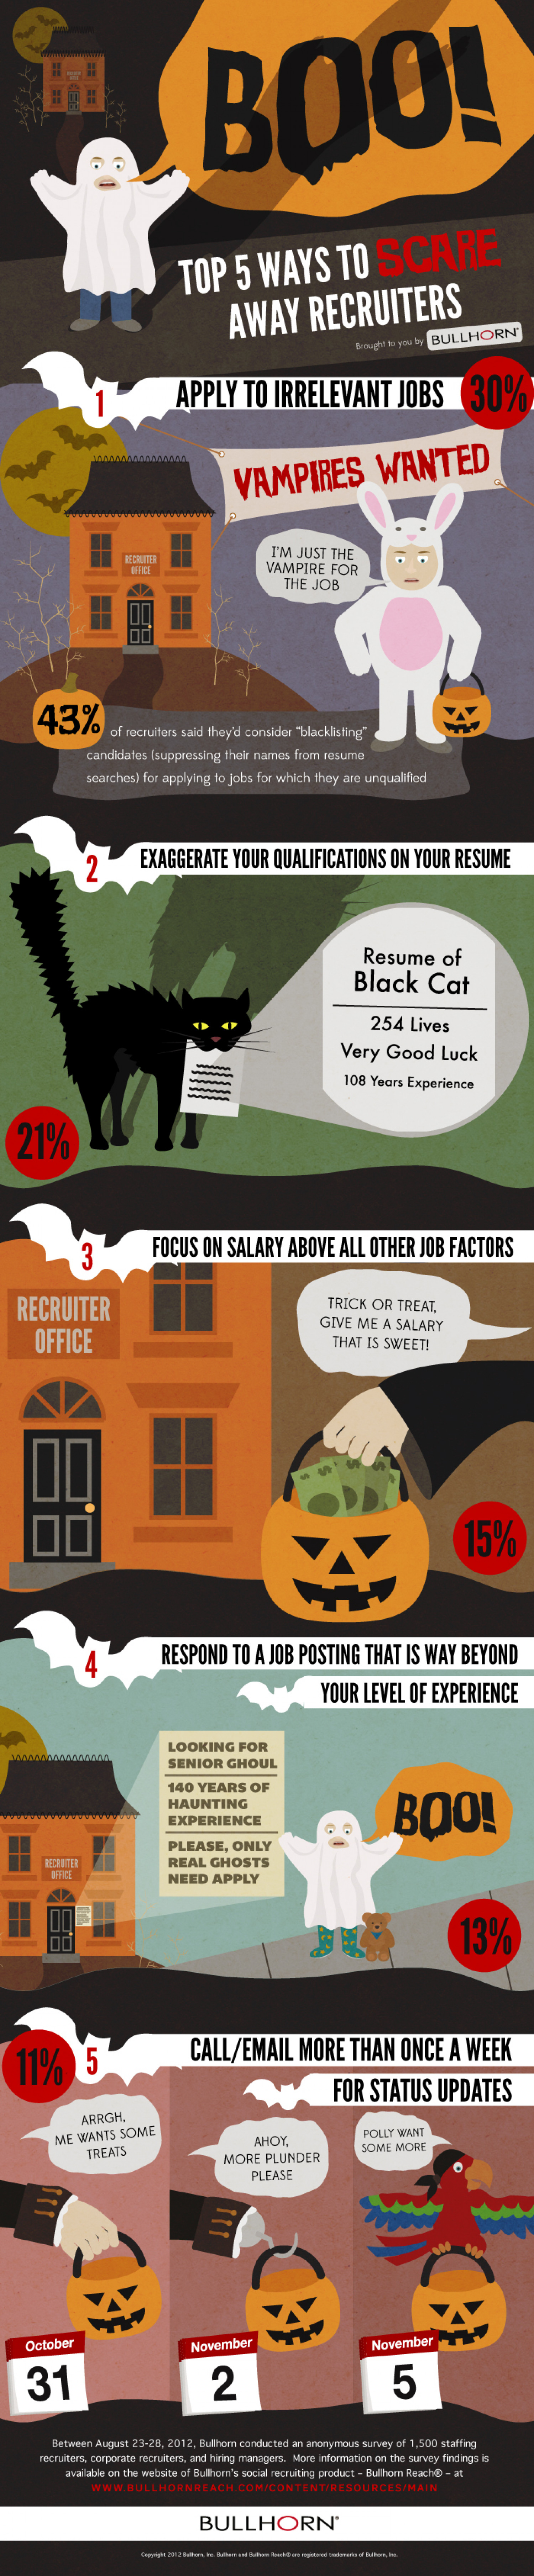 Boo! 5 Ways to Scare Away Recruiters  Infographic